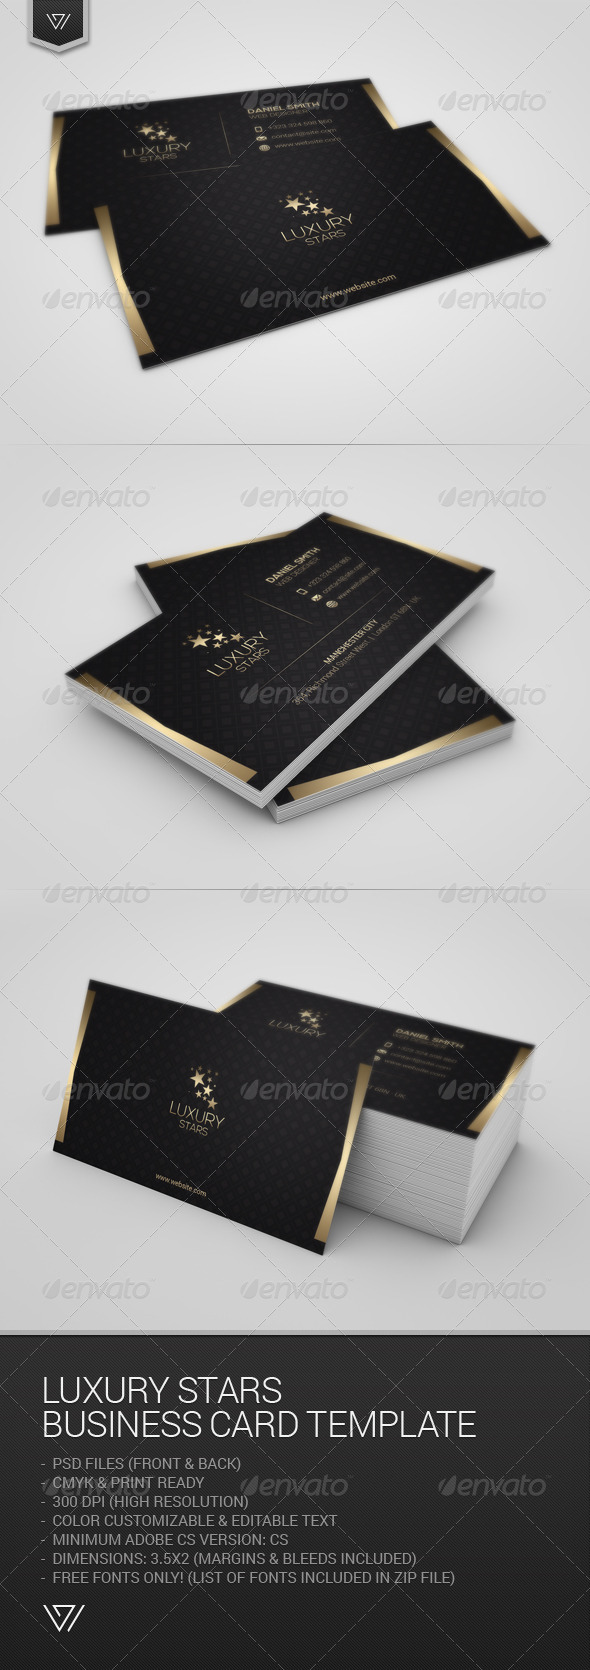 GraphicRiver Luxury Stars Business Card 7717084